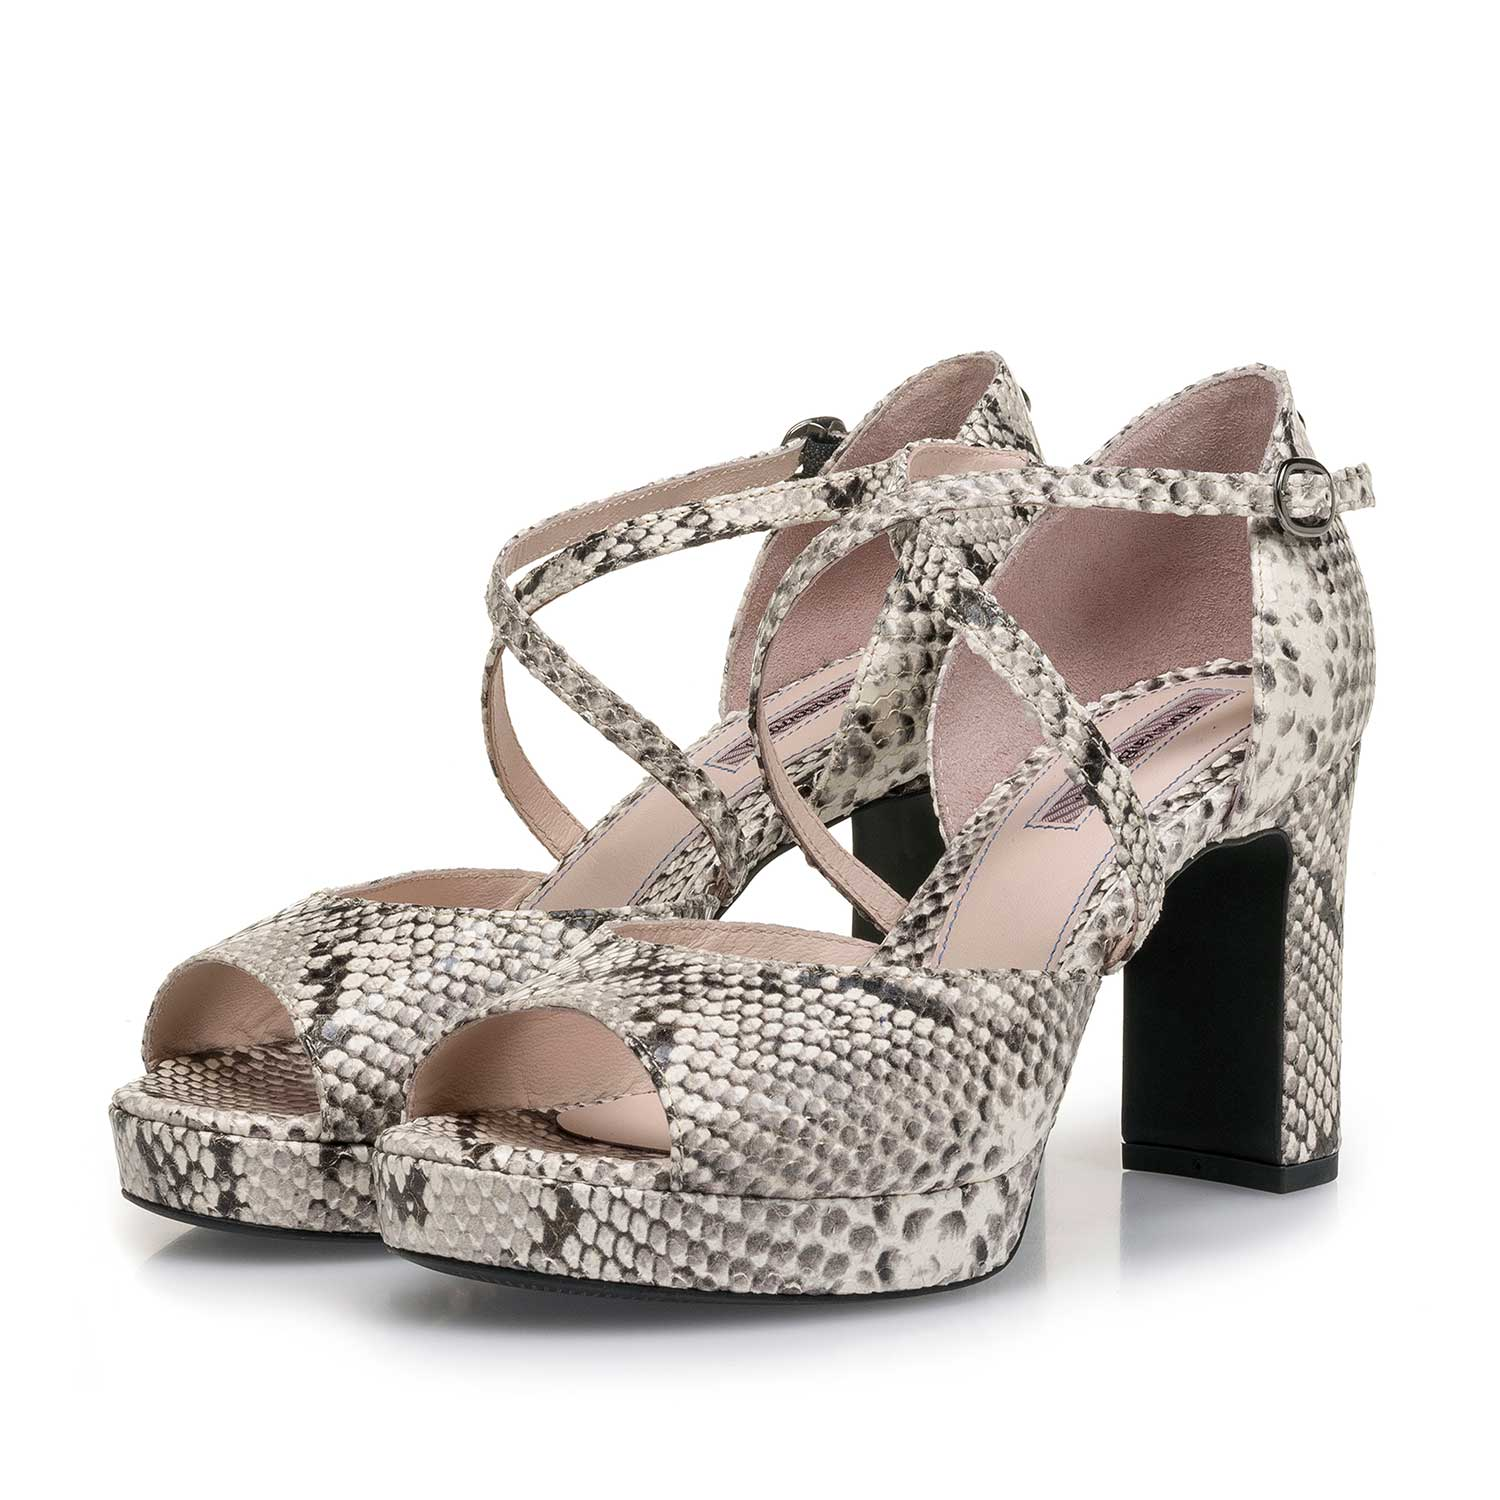 85903/00 - White snake print high-heeled leather sandal